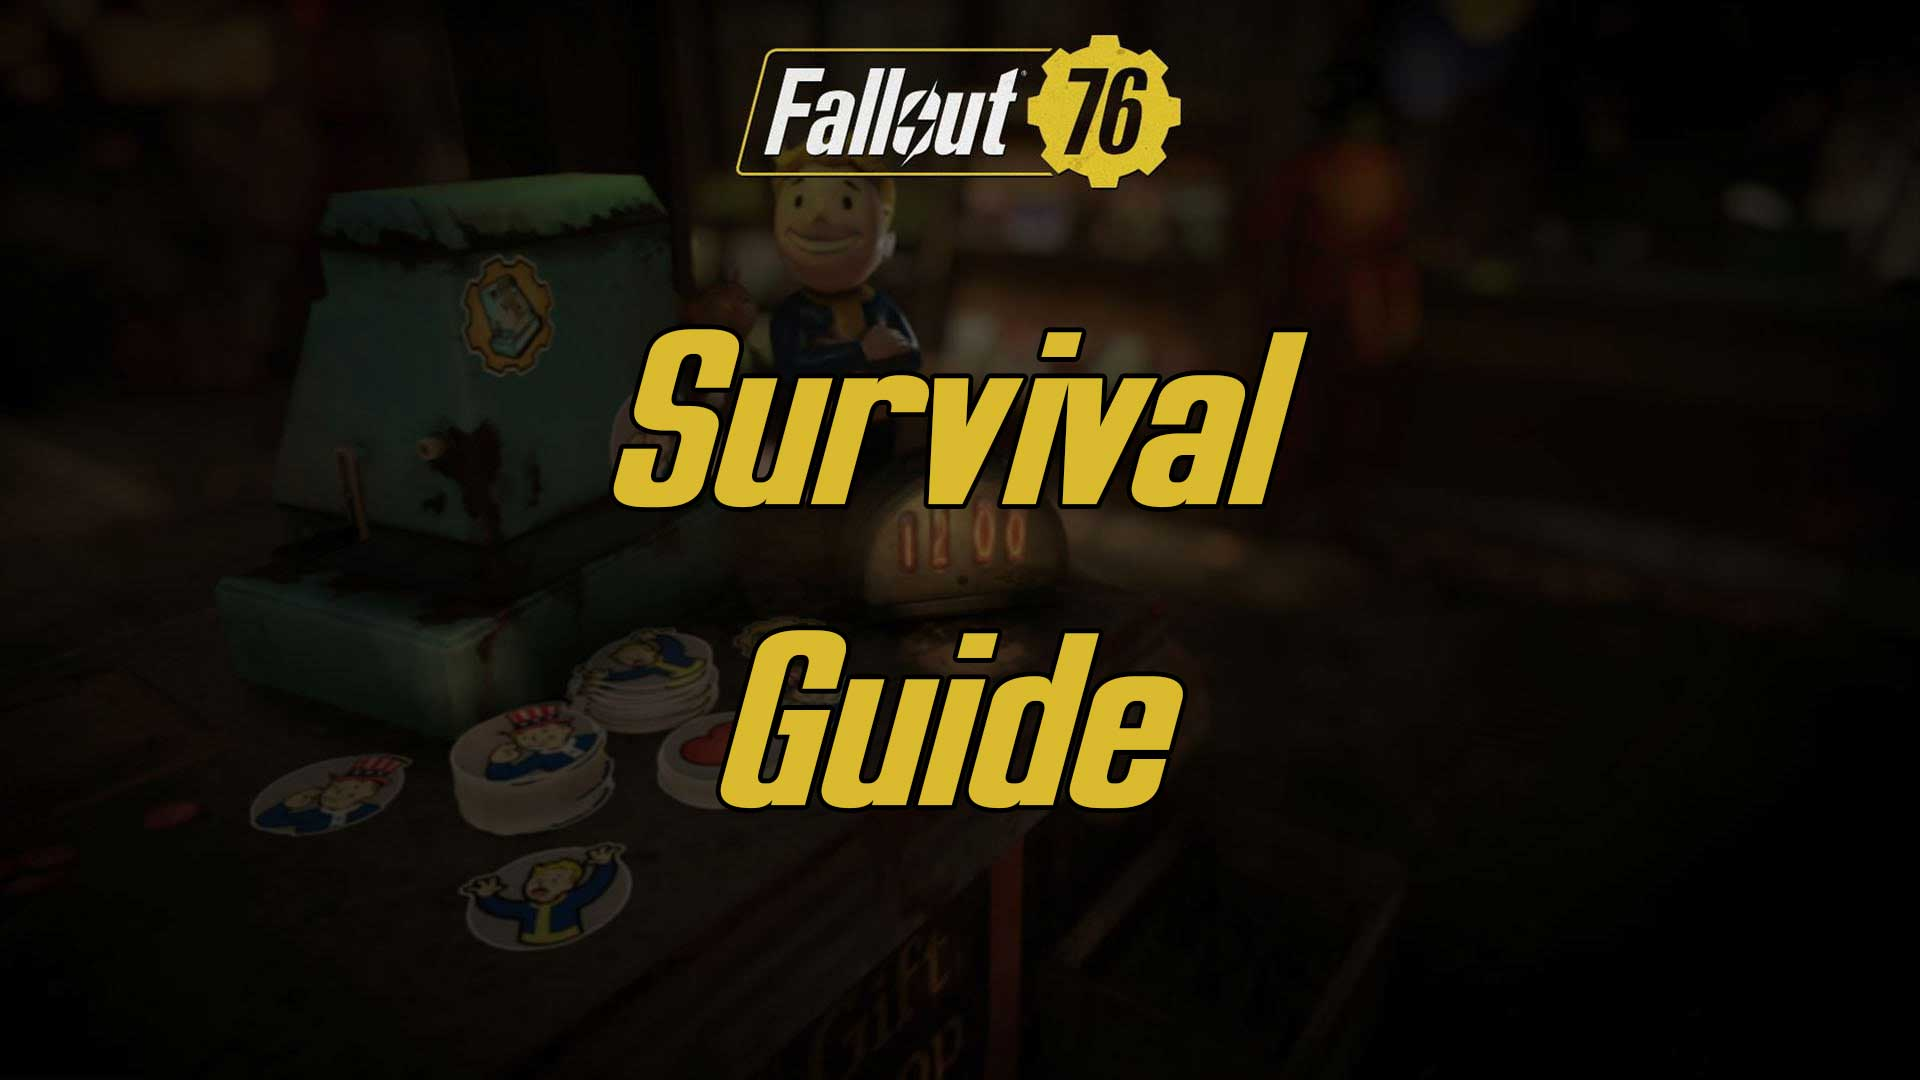 Fallout 76 Survival Guide Image